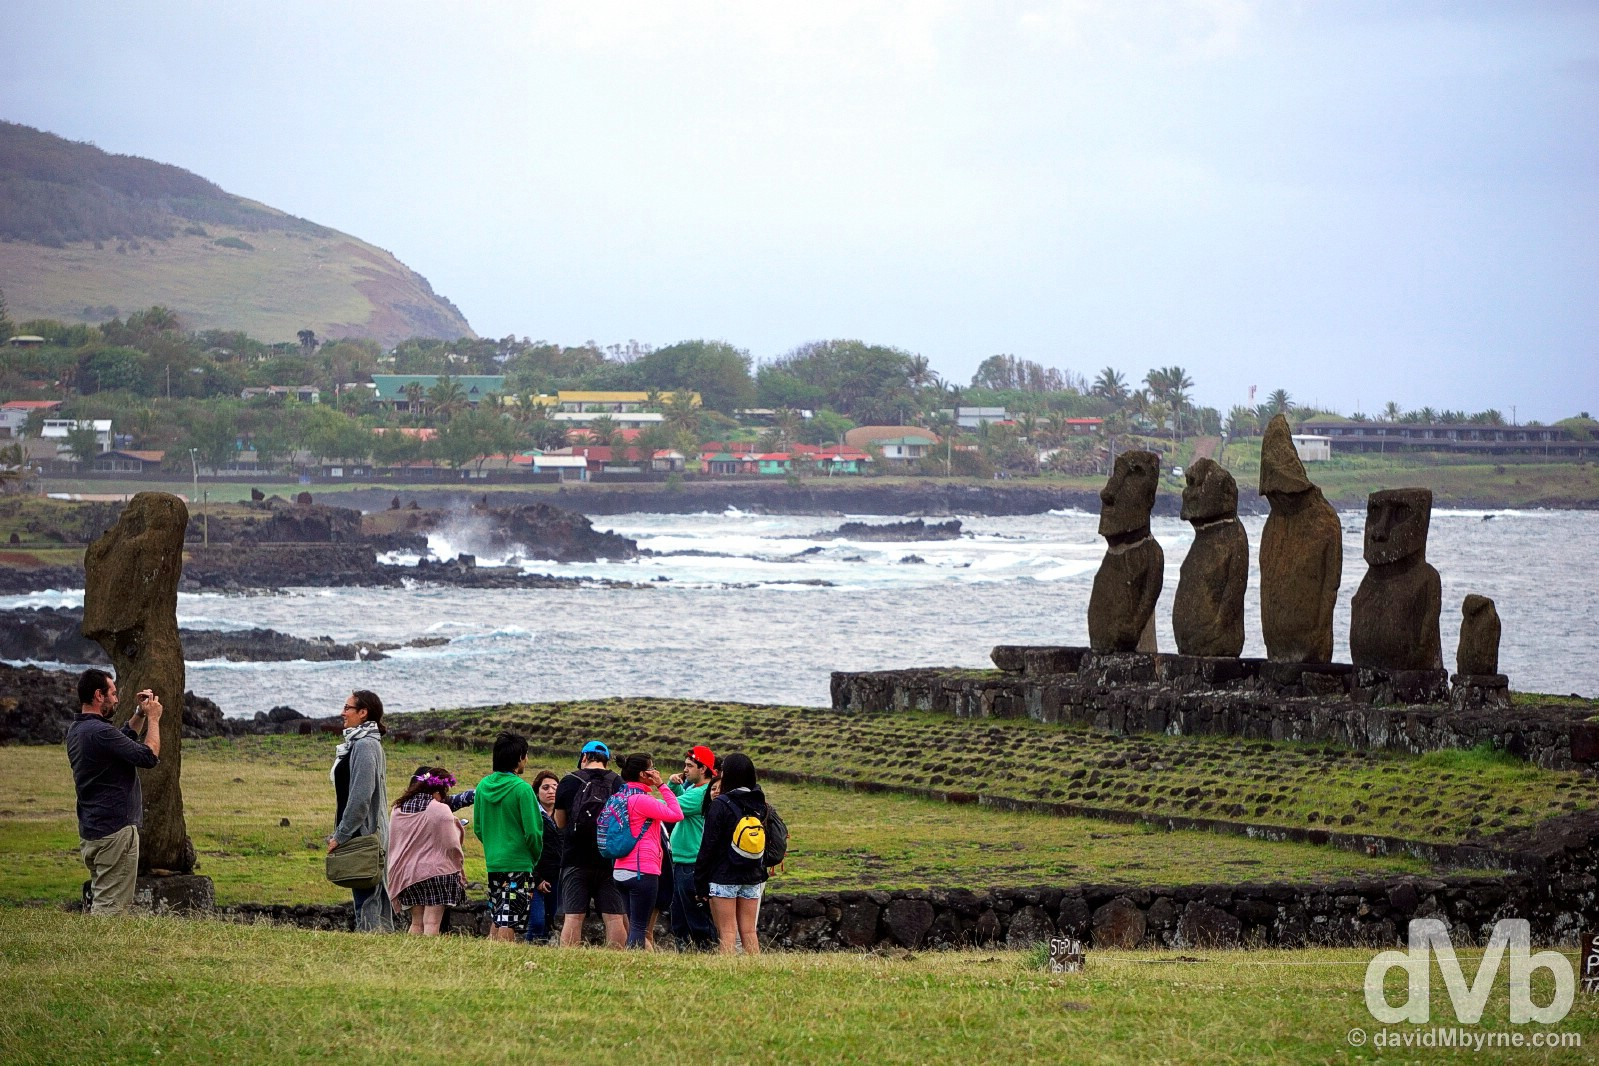 Approaching the end of Day 1 at Tahai on the outskirts of Hanga Roa with the slopes of the island's Rano Kau volcano (see Day 2) in the distance. This image shows the (mostly badly eroded) moai of the two other Tahai ahu - the lone moai of Ahu Tahai itself (left) & the 5 moai of Ahu Vai Uri (right). Easter Island, Chile. September 27, 2015.